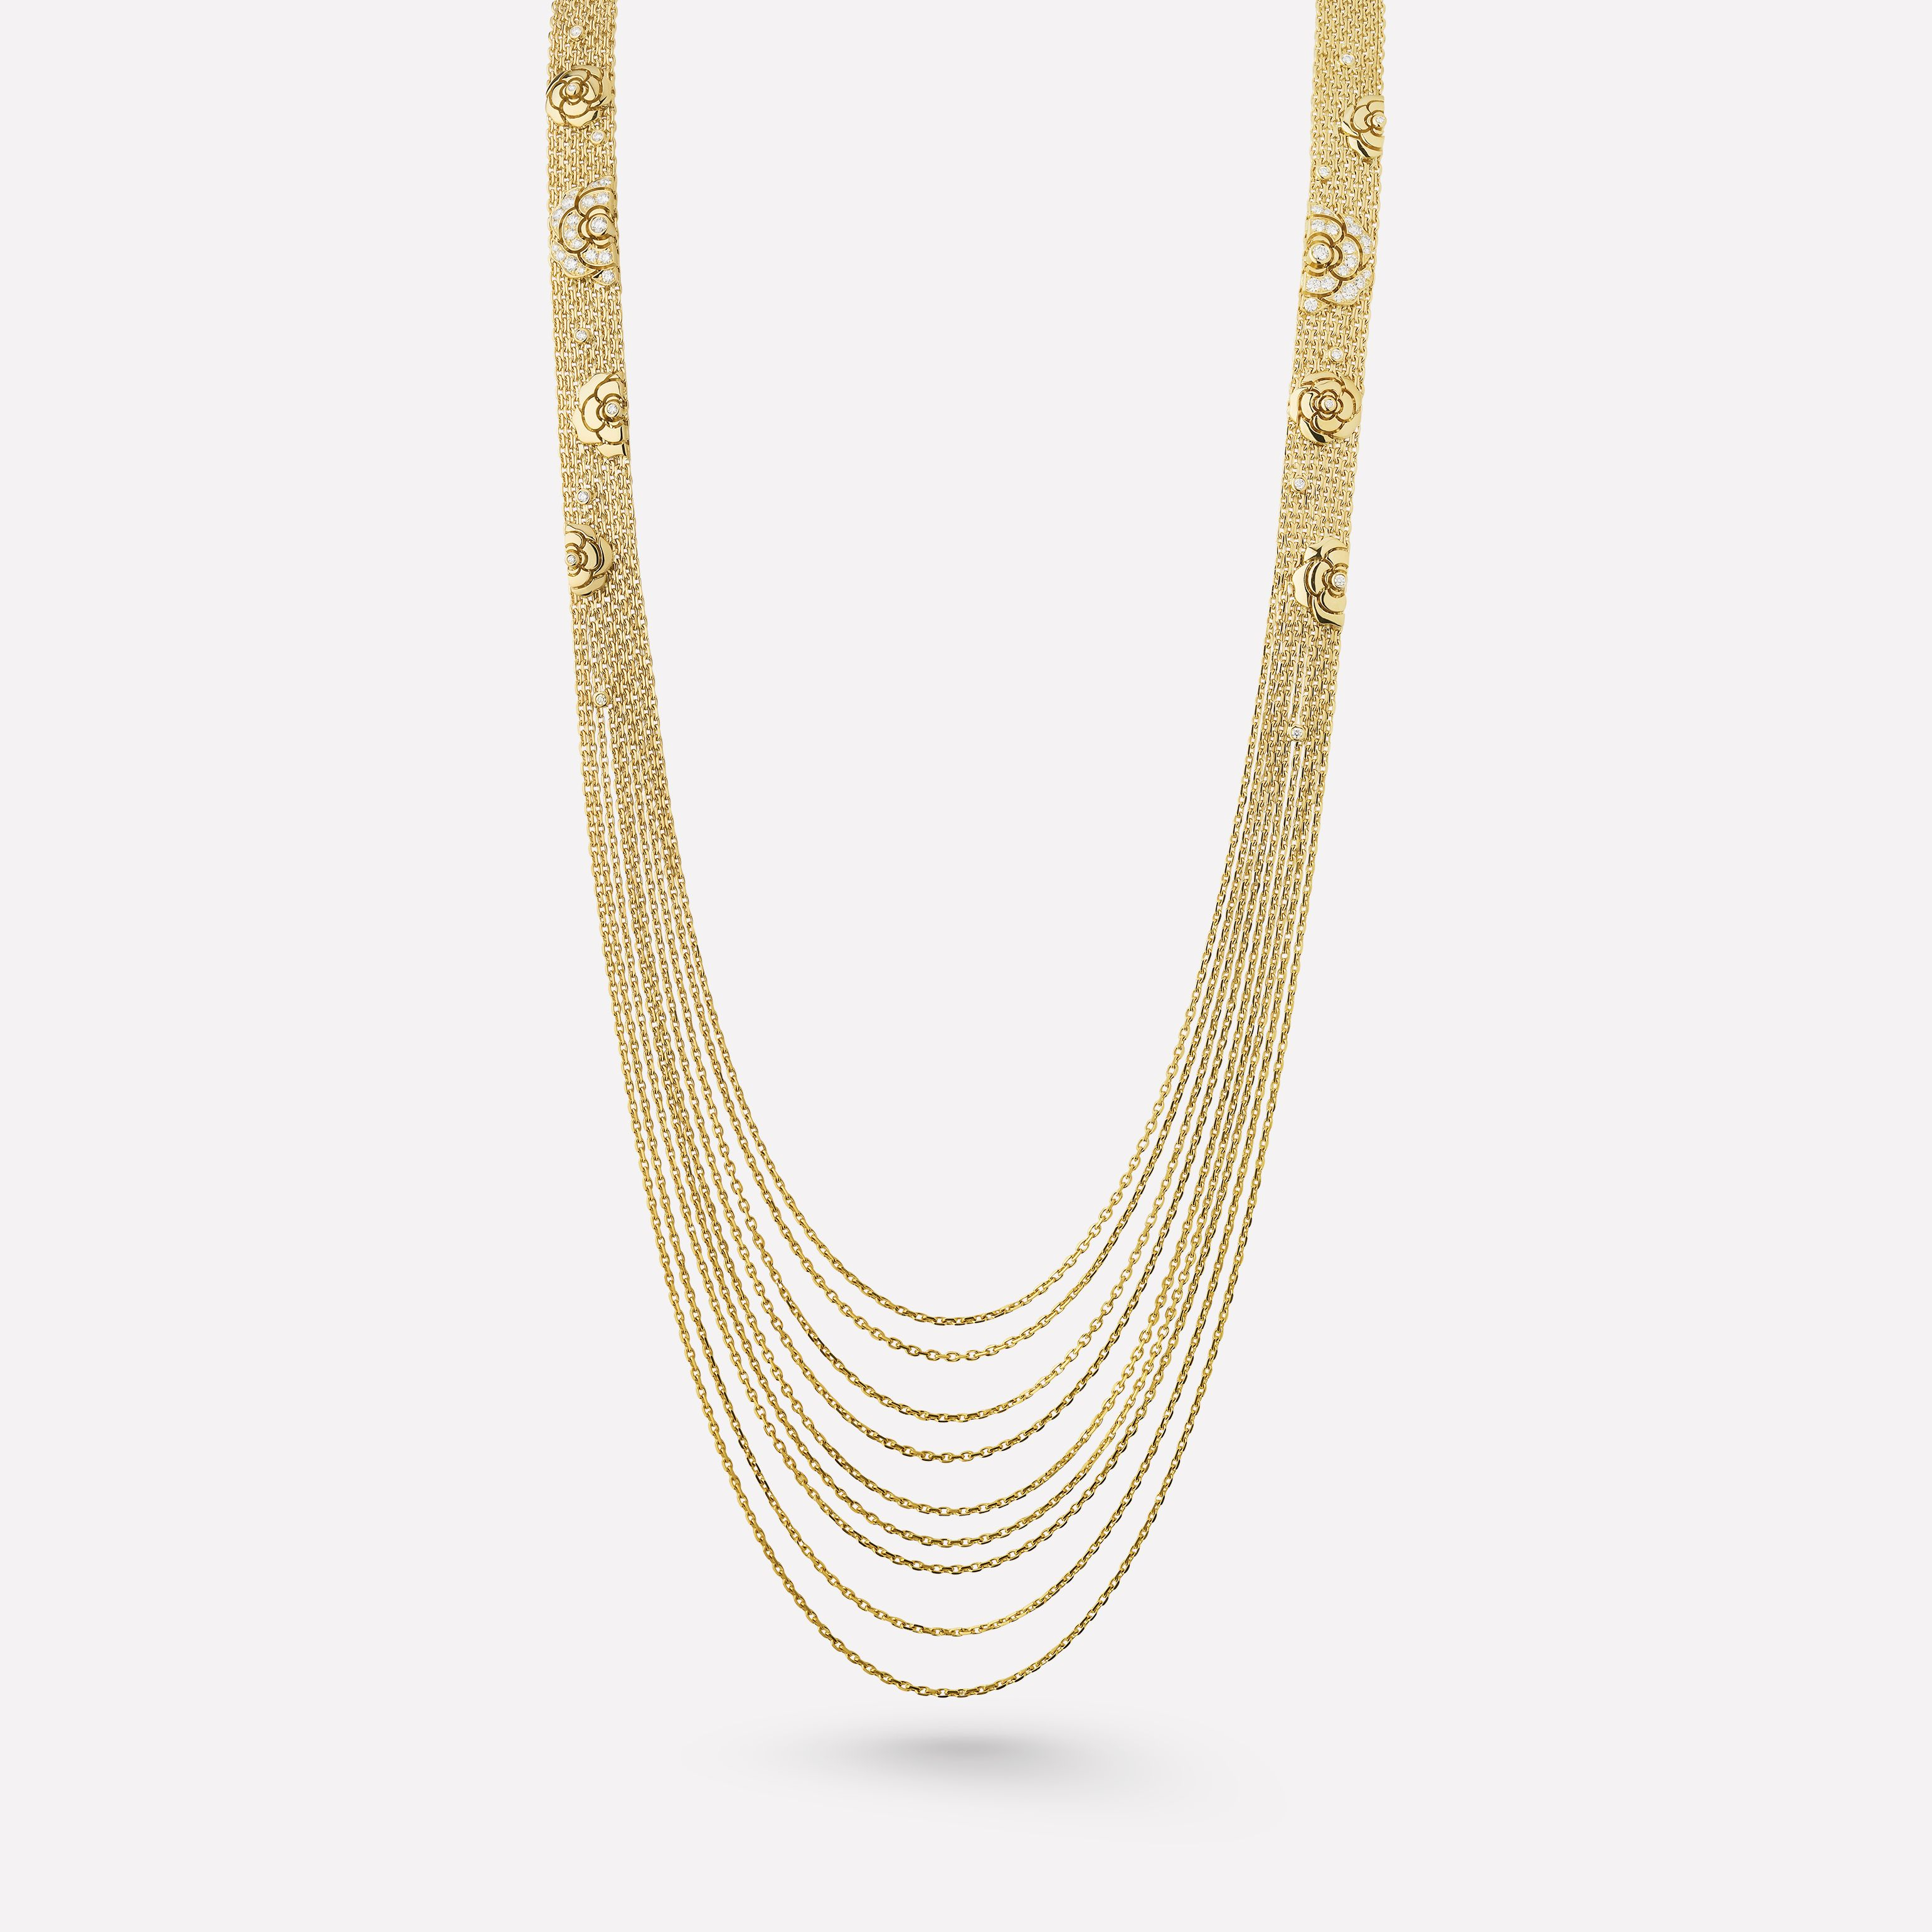 Camélia Necklace – Impression Camélia Necklace In 18K Yellow Intended For Newest Yellow Gold Diamond Sautoir Necklaces (View 5 of 25)